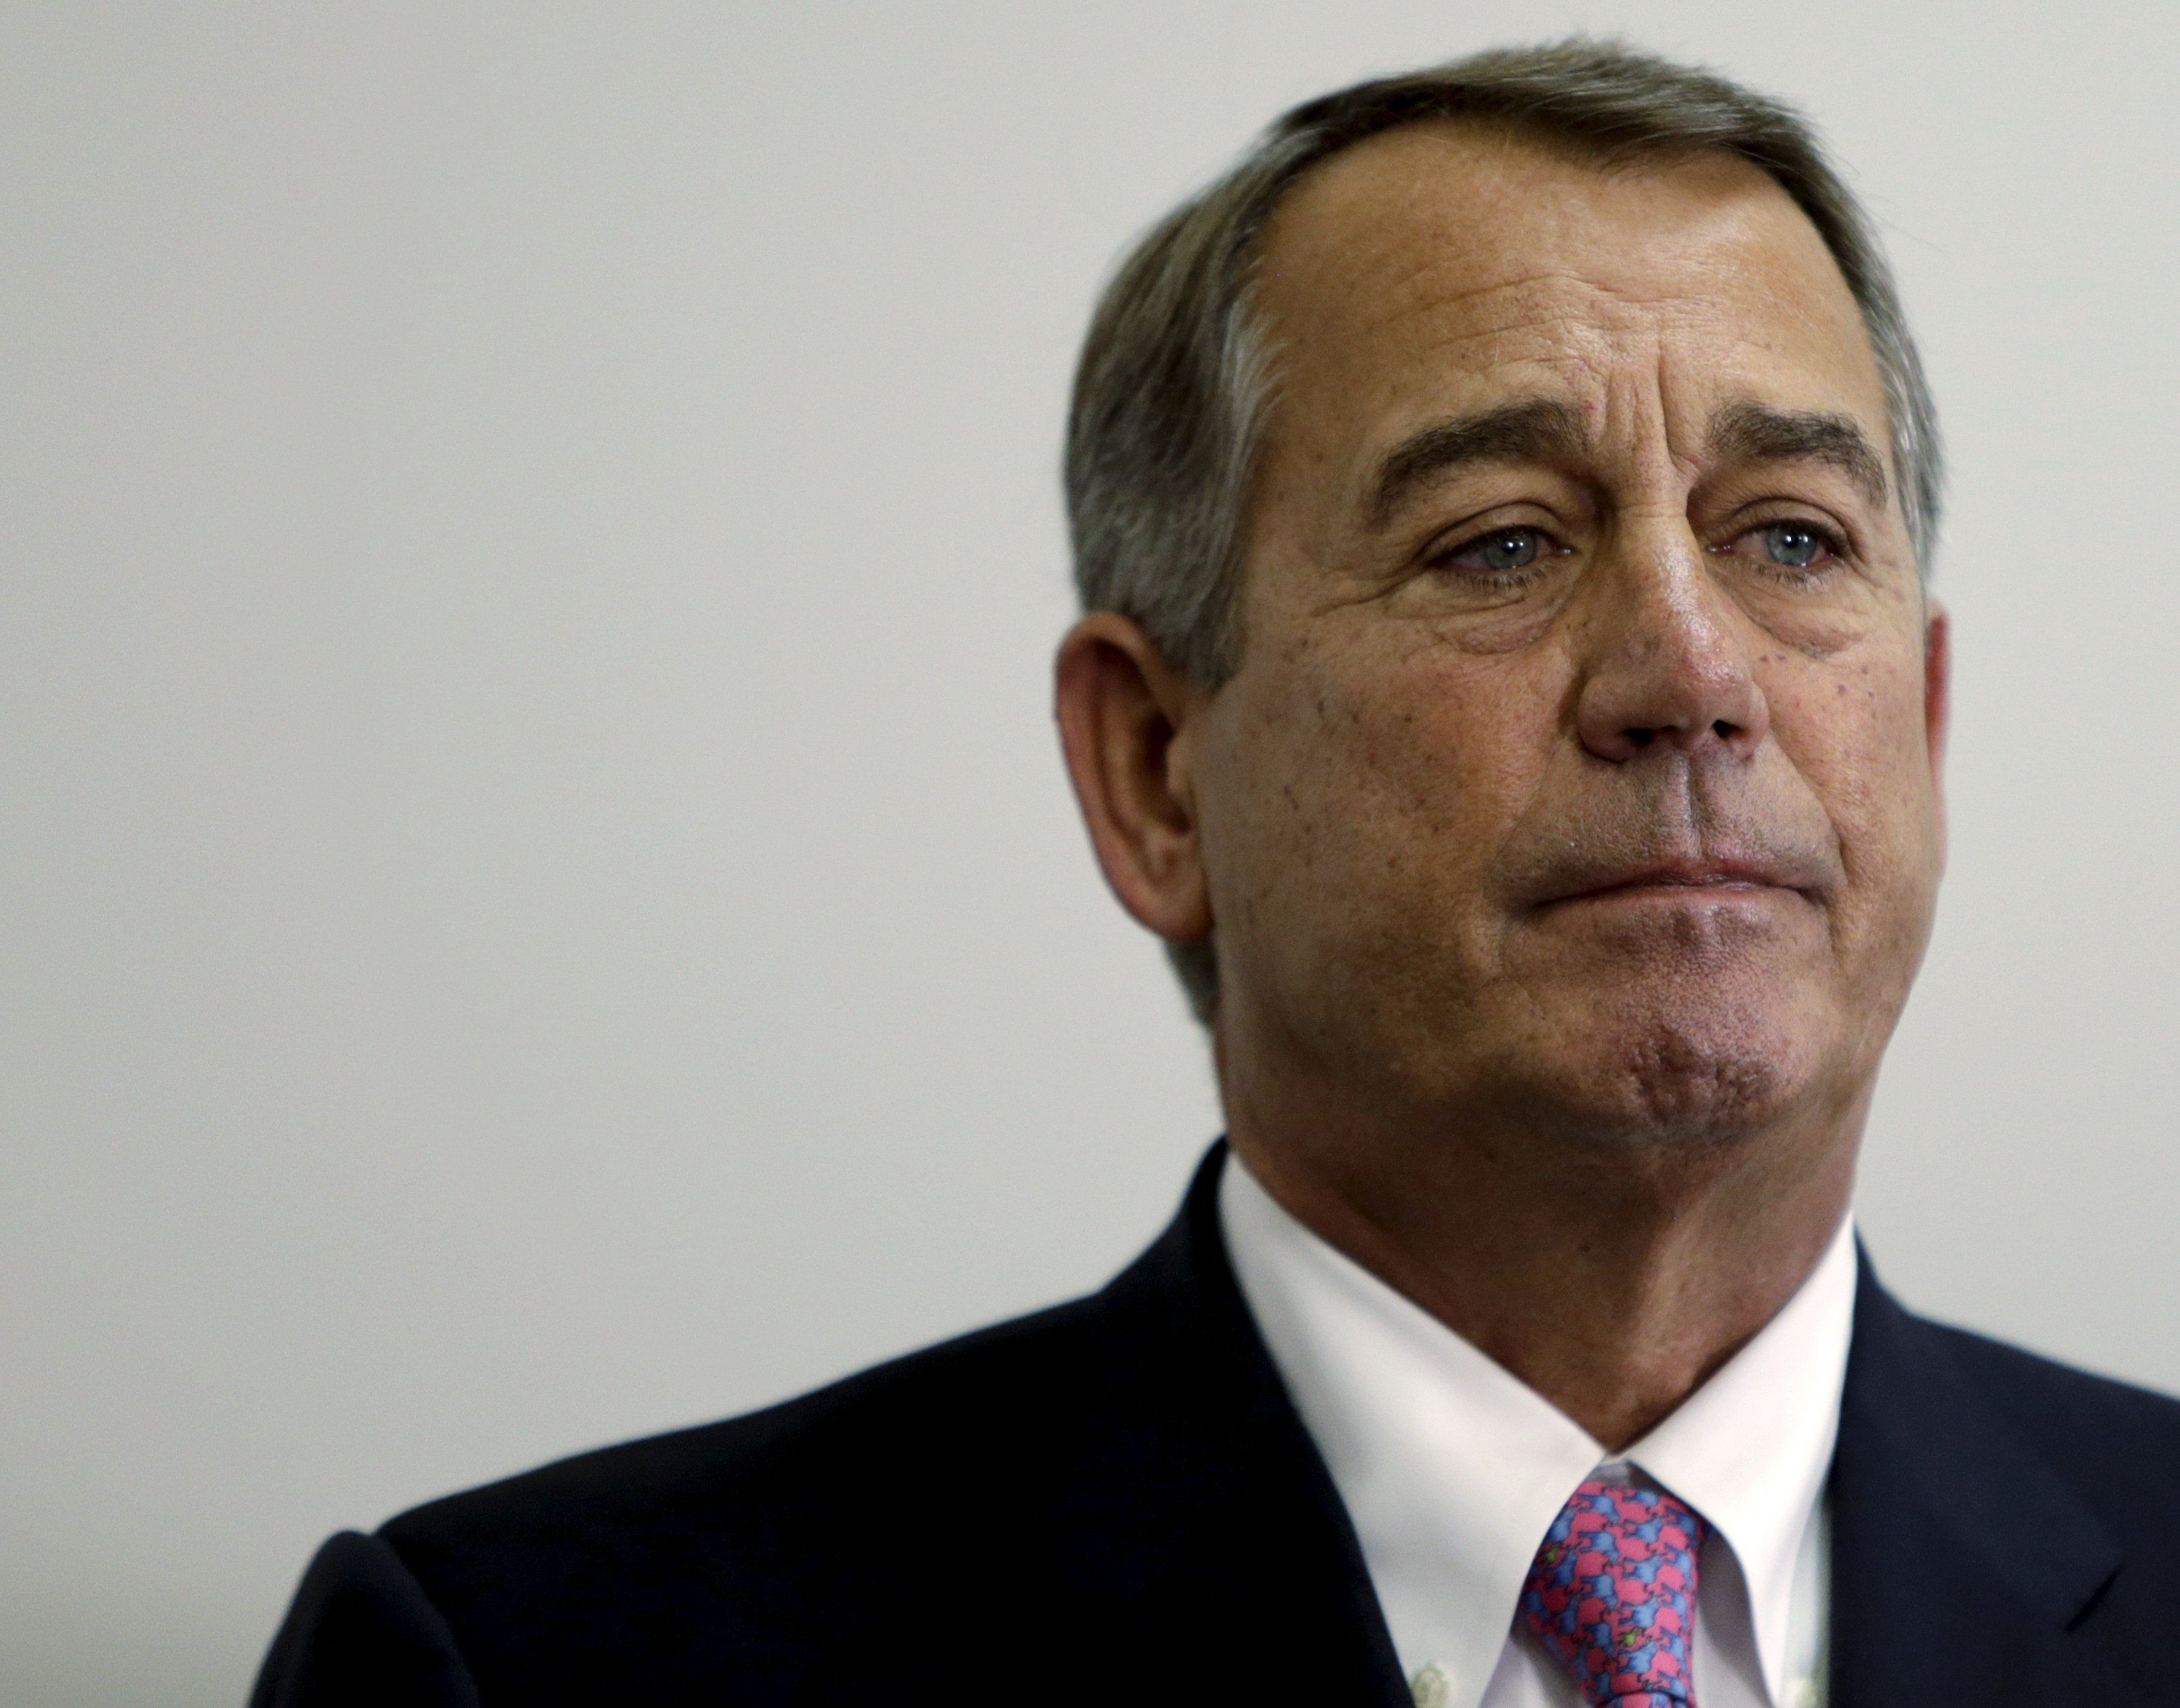 Outgoing Speaker of the House John Boehner (R-OH) listens to accolades during a news conference on the two-year budget deal with the White House in Washington, October 27, 2015.  REUTERS/Gary Cameron/File Photo